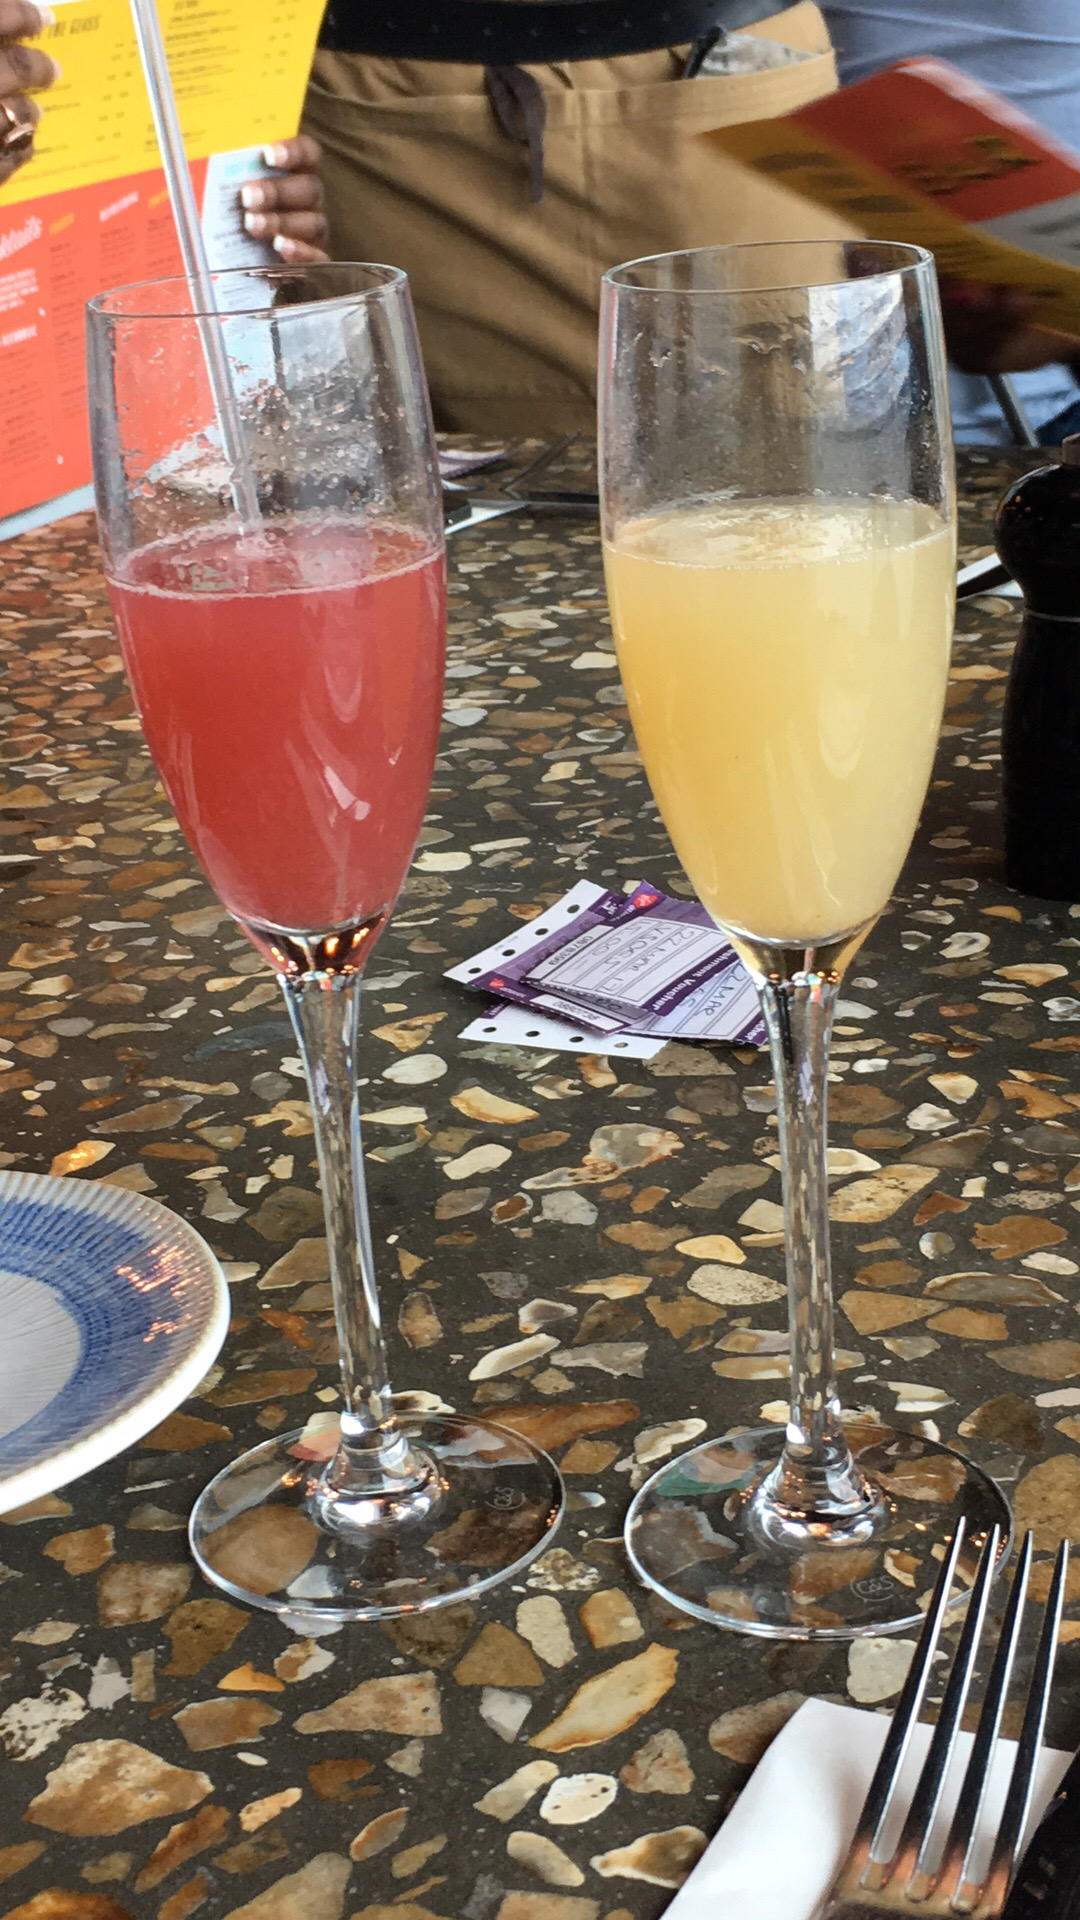 Two cocktails, both prosecco based. One pink and one yellow.